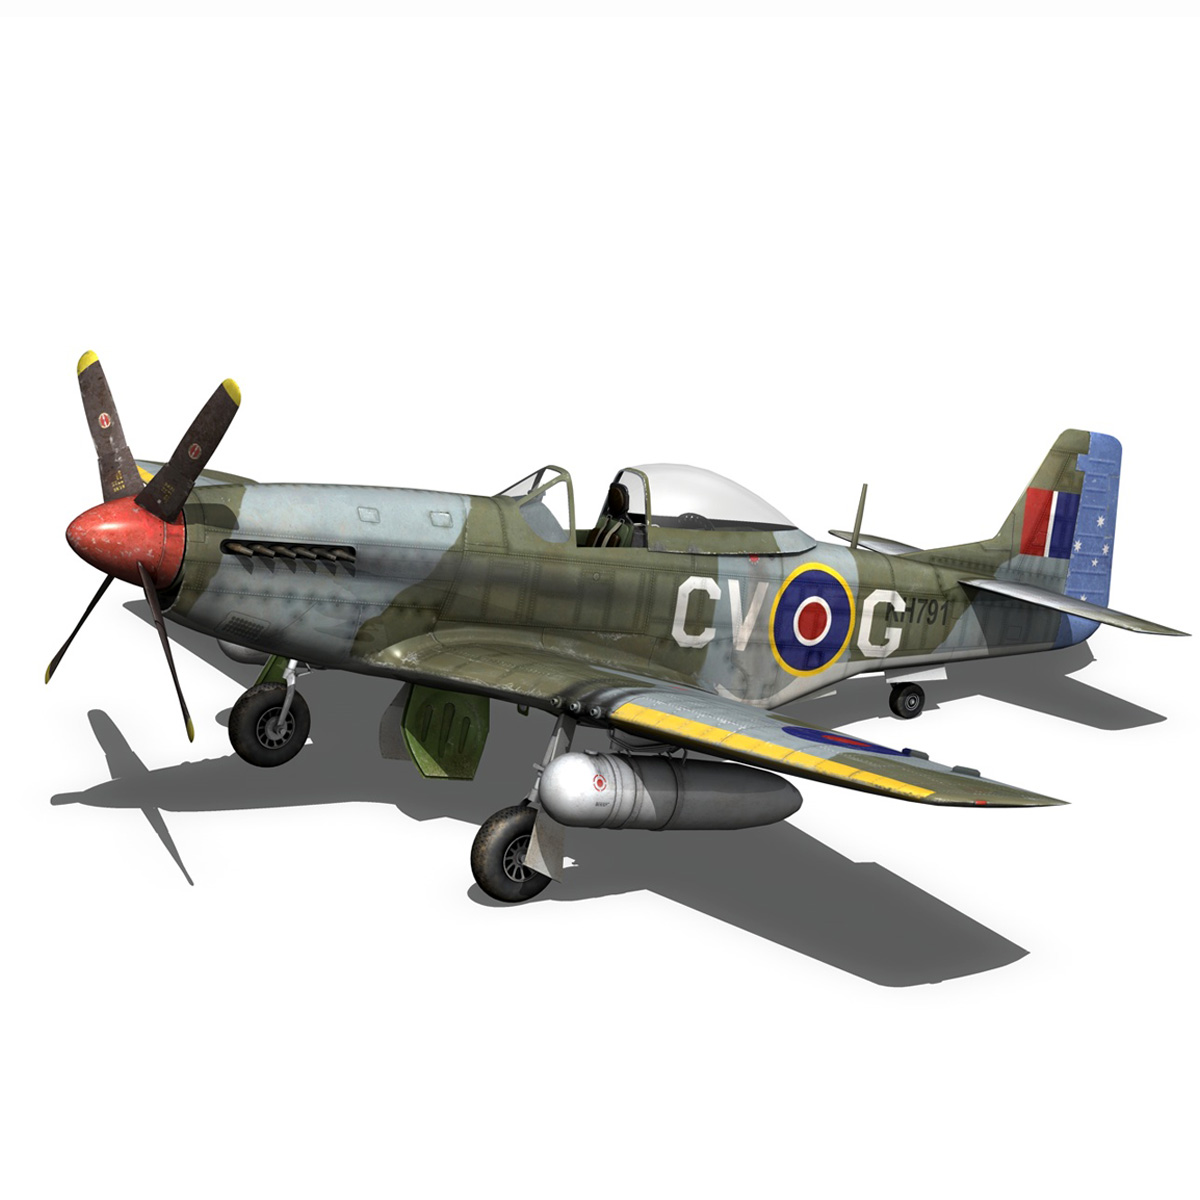 north american p-51d – cv-g 3d model 3ds fbx c4d lwo obj 188568